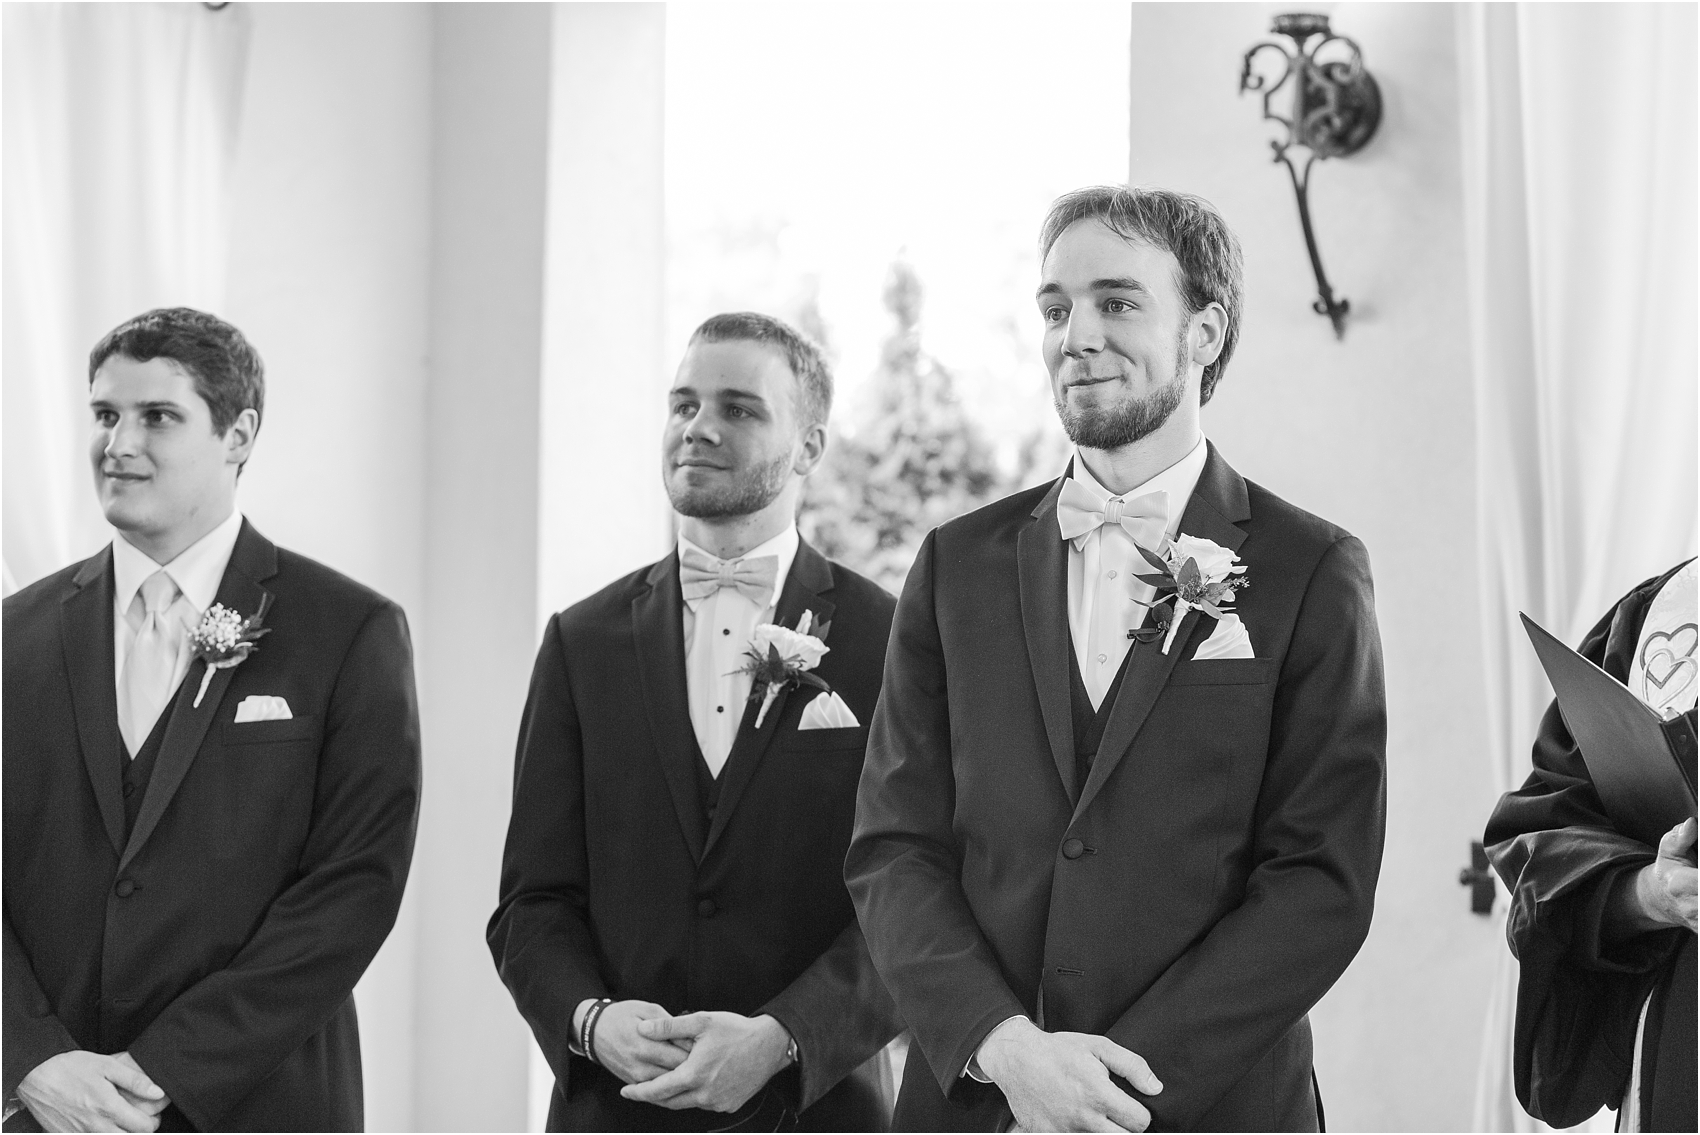 lord-of-the-rings-inspired-wedding-photos-at-crystal-gardens-in-howell-mi-by-courtney-carolyn-photography_0030.jpg